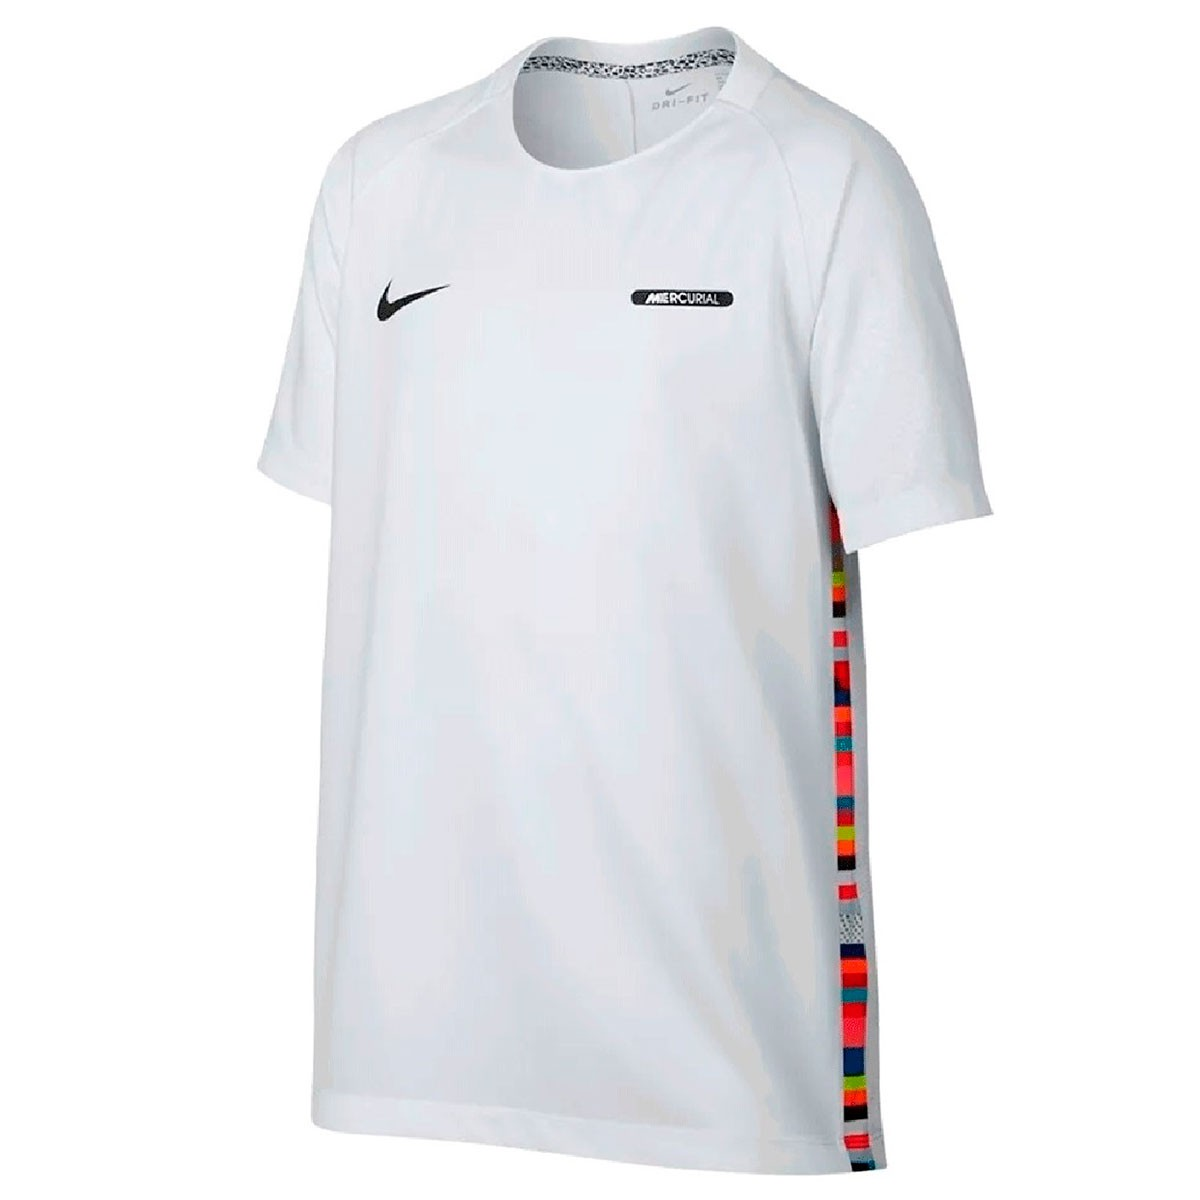 Camiseta Nike Dri-Fit Mercurial CR7 Infantil Branco